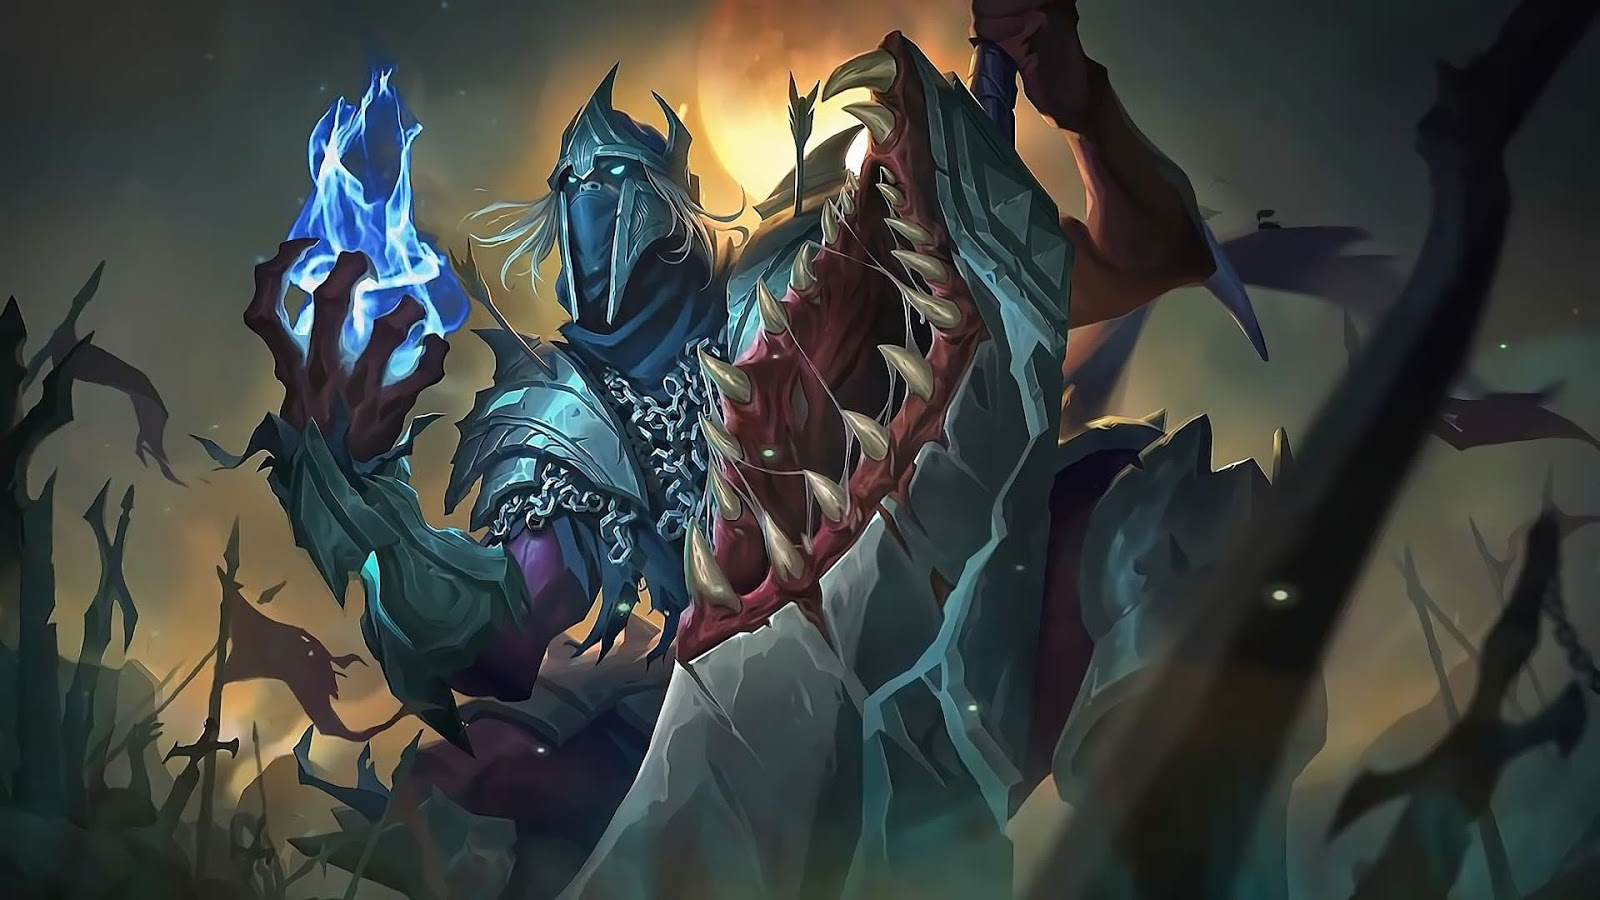 Wallpaper Hanzo Undead King Mobile Legends Full HD for PC